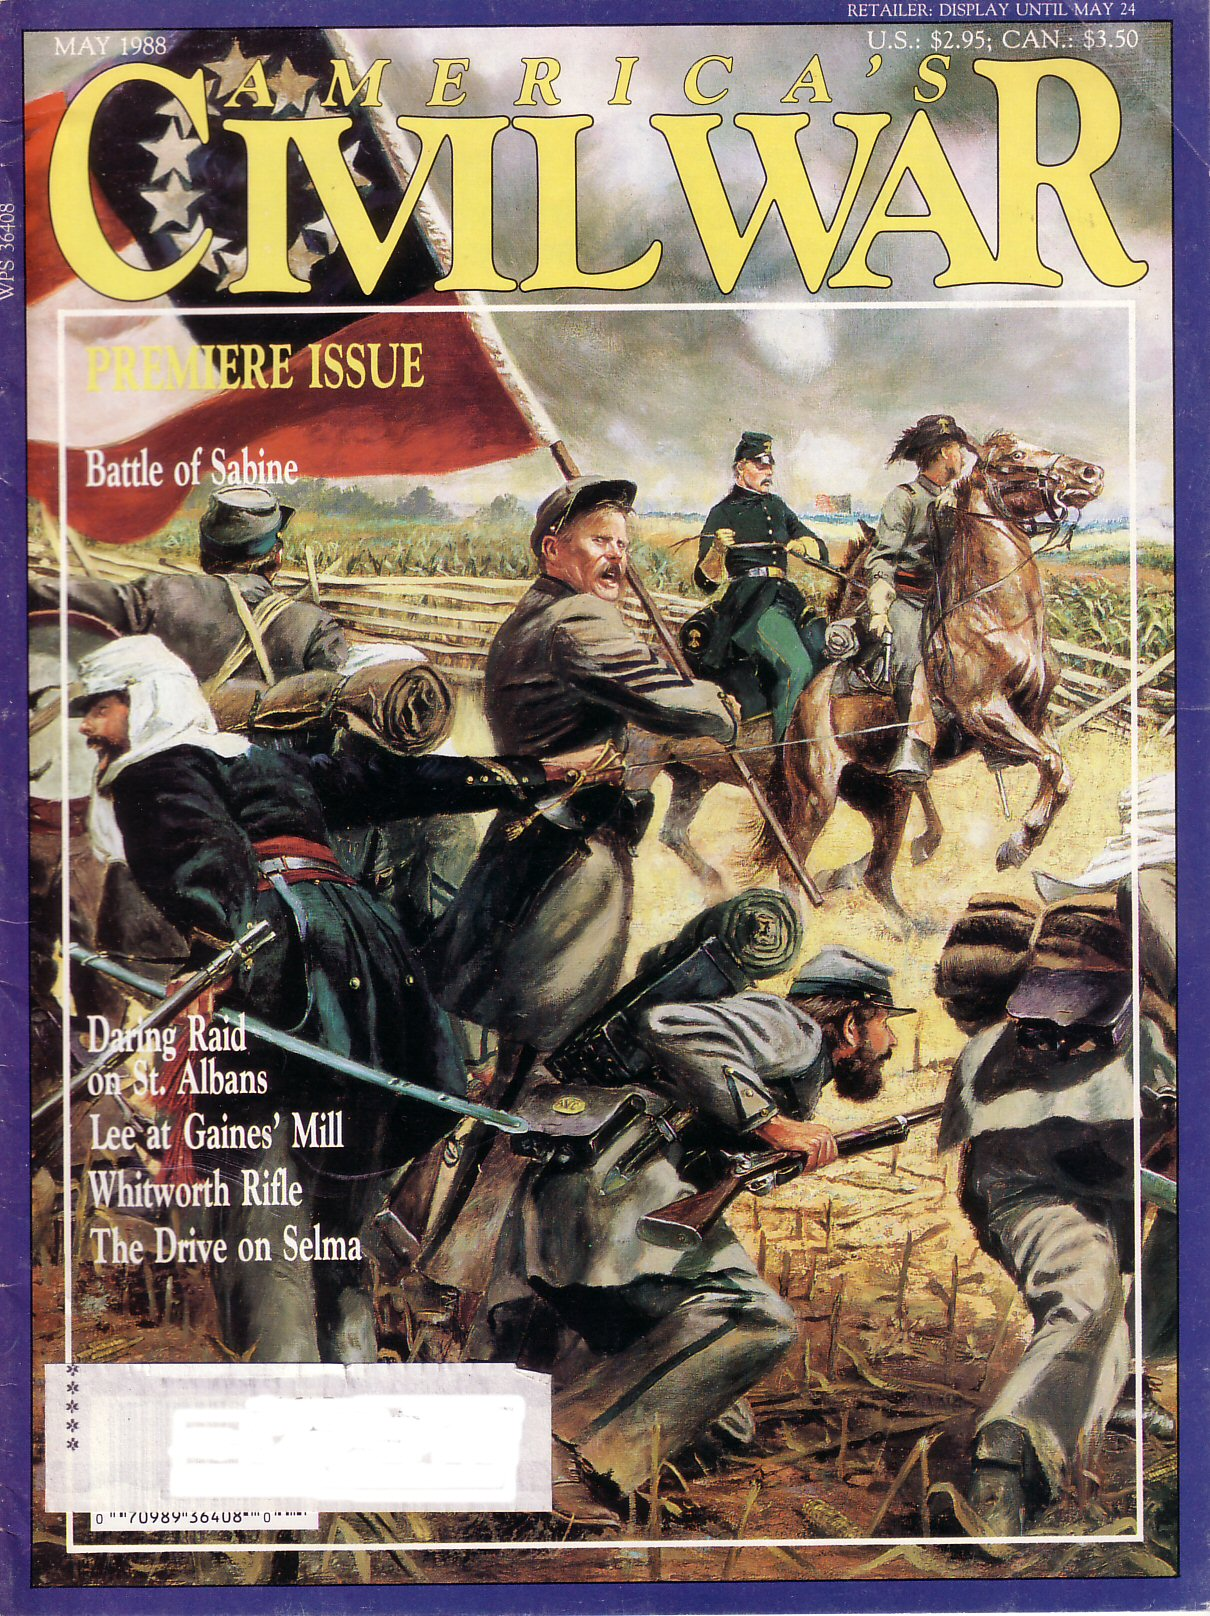 Americas Civil War, Volume 1, Number 1 (May 1988)